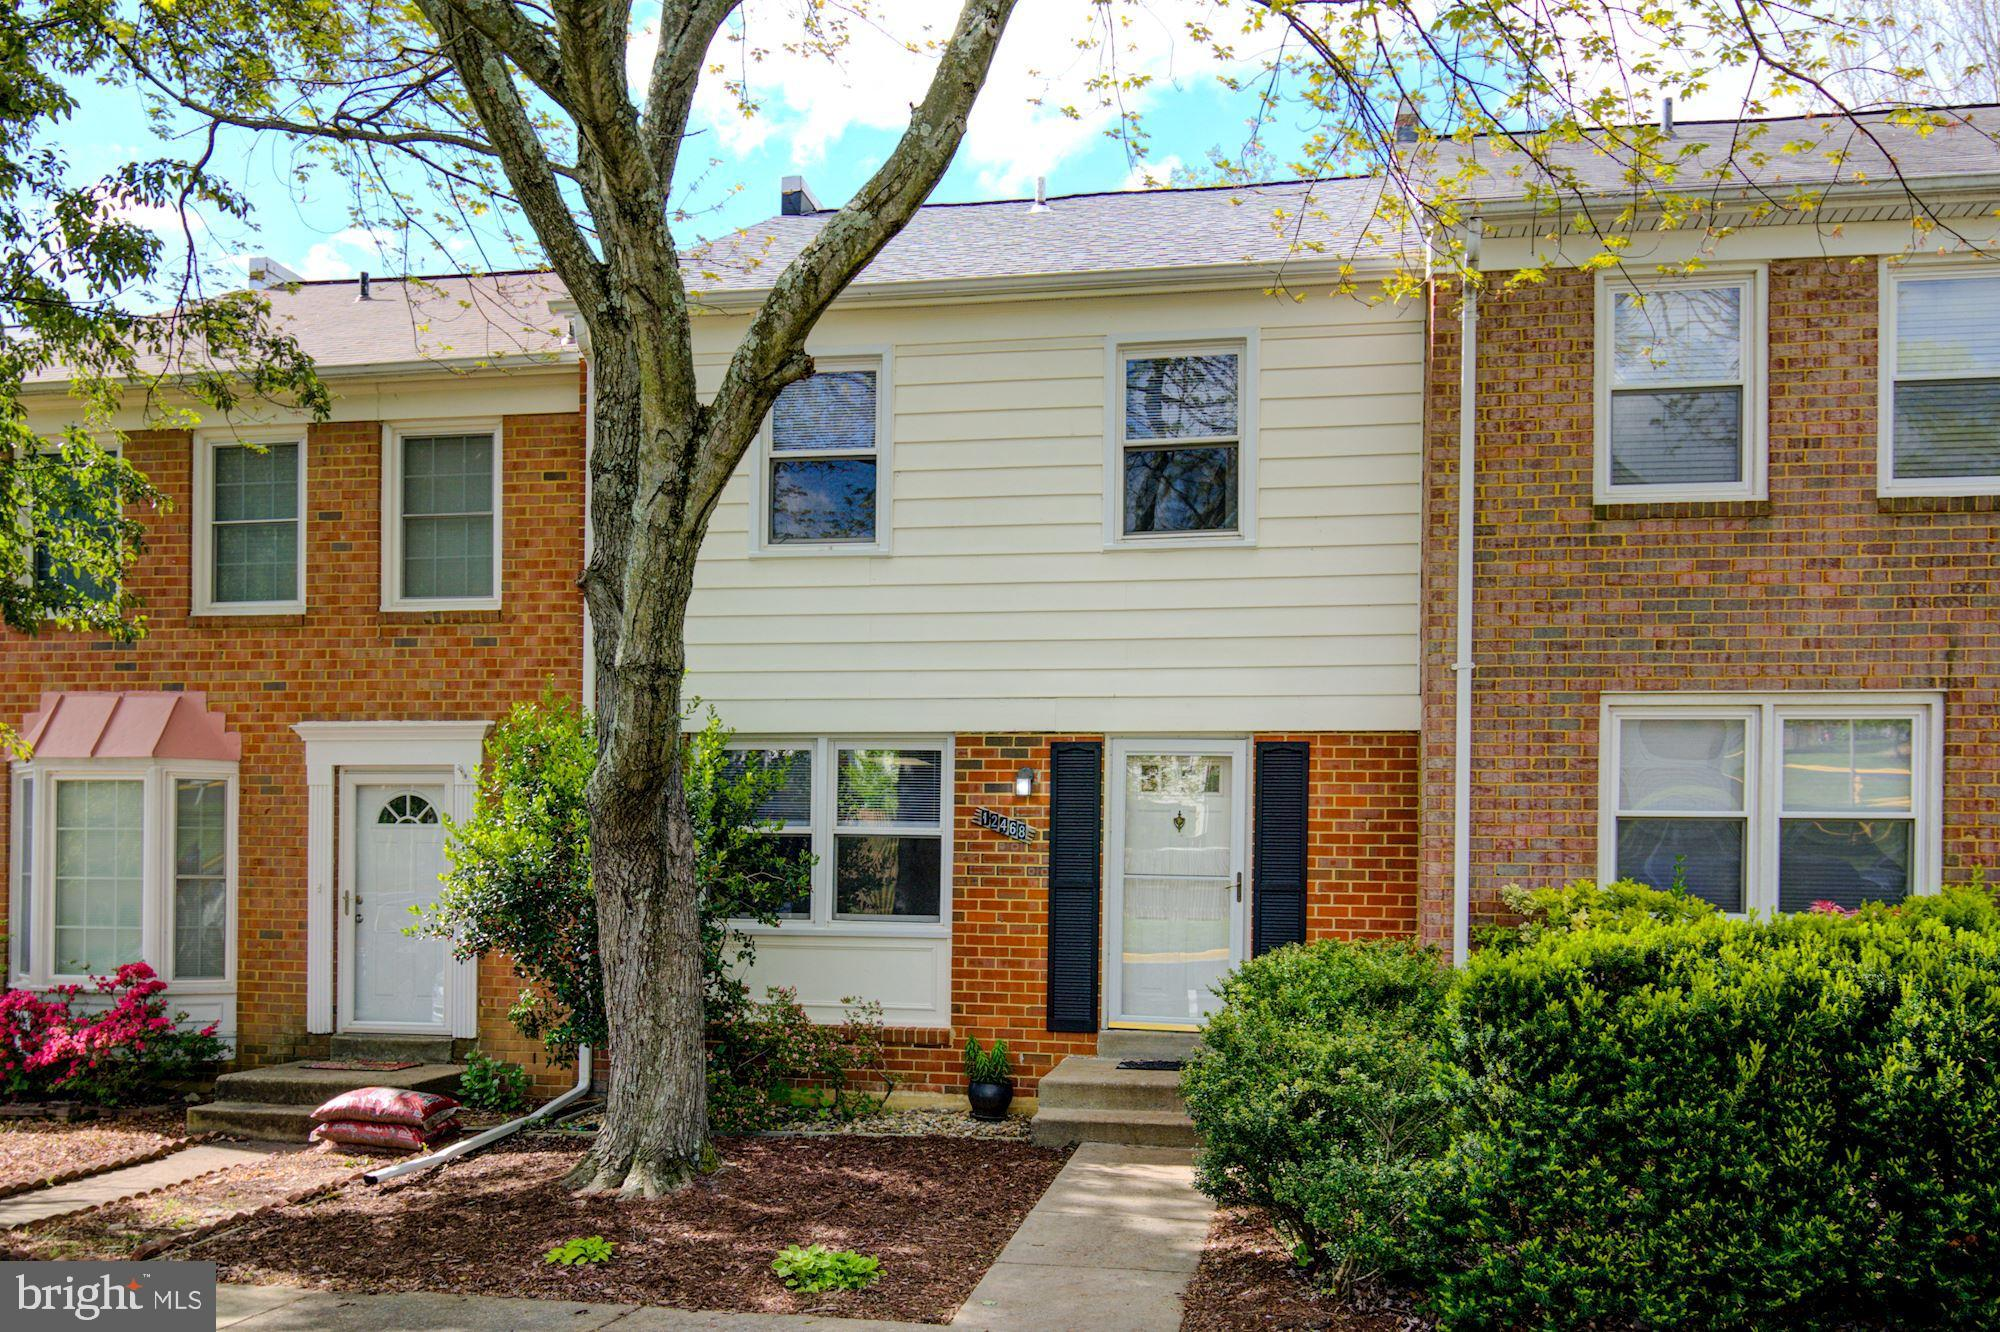 You are invited to tour this charming 3 bedroom 2.5 bath townhome condo in Lake Ridge community just